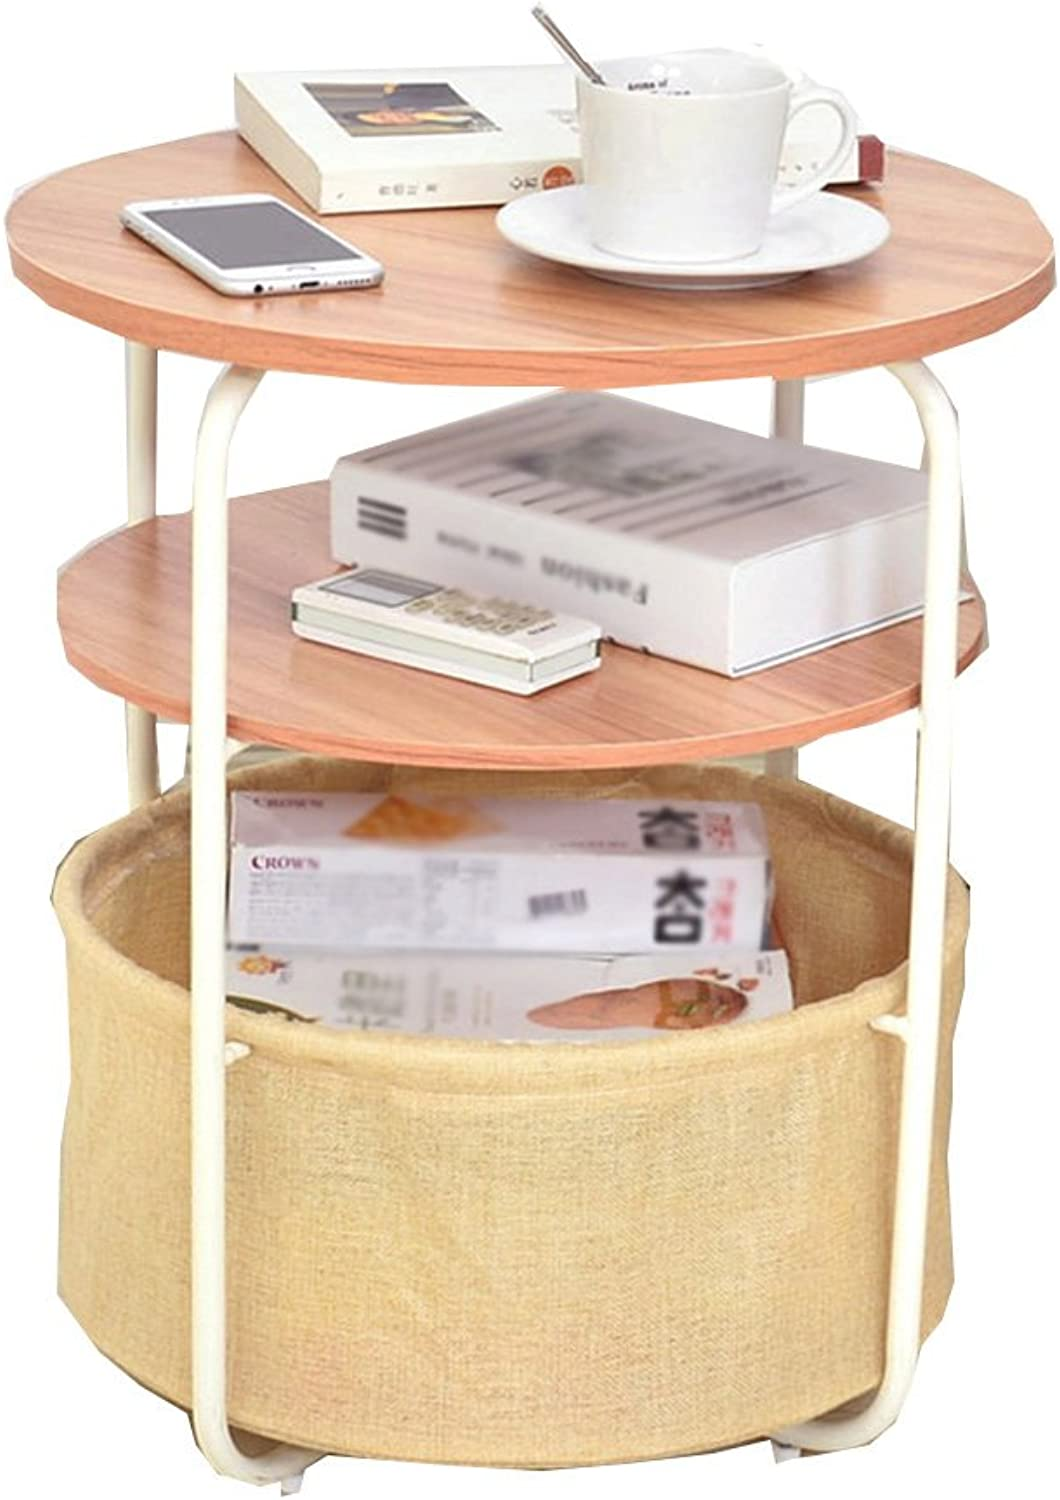 GLJ A Few Sides The Sofa Iron Cabinets Small Coffee Table Simple Living Room Phone A Few Corners The Table A Few Units Folding Table (color   D)